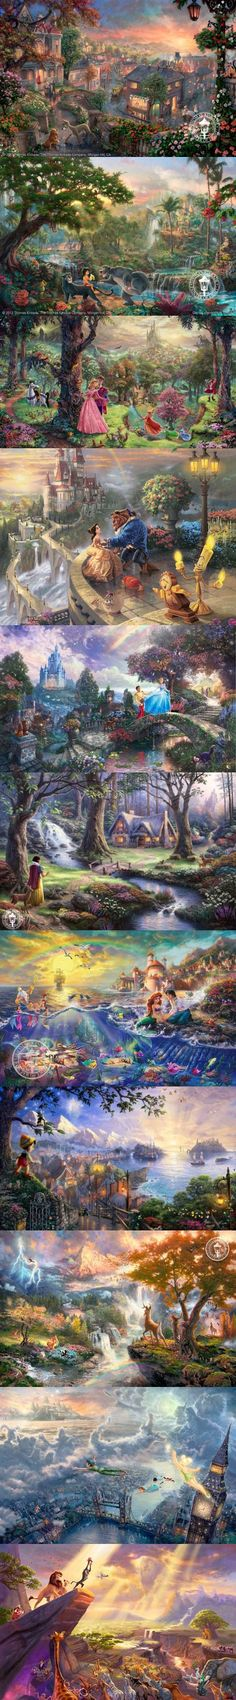 Thomas Kinkade Disney. I Will have one, or more of these. .. someday!